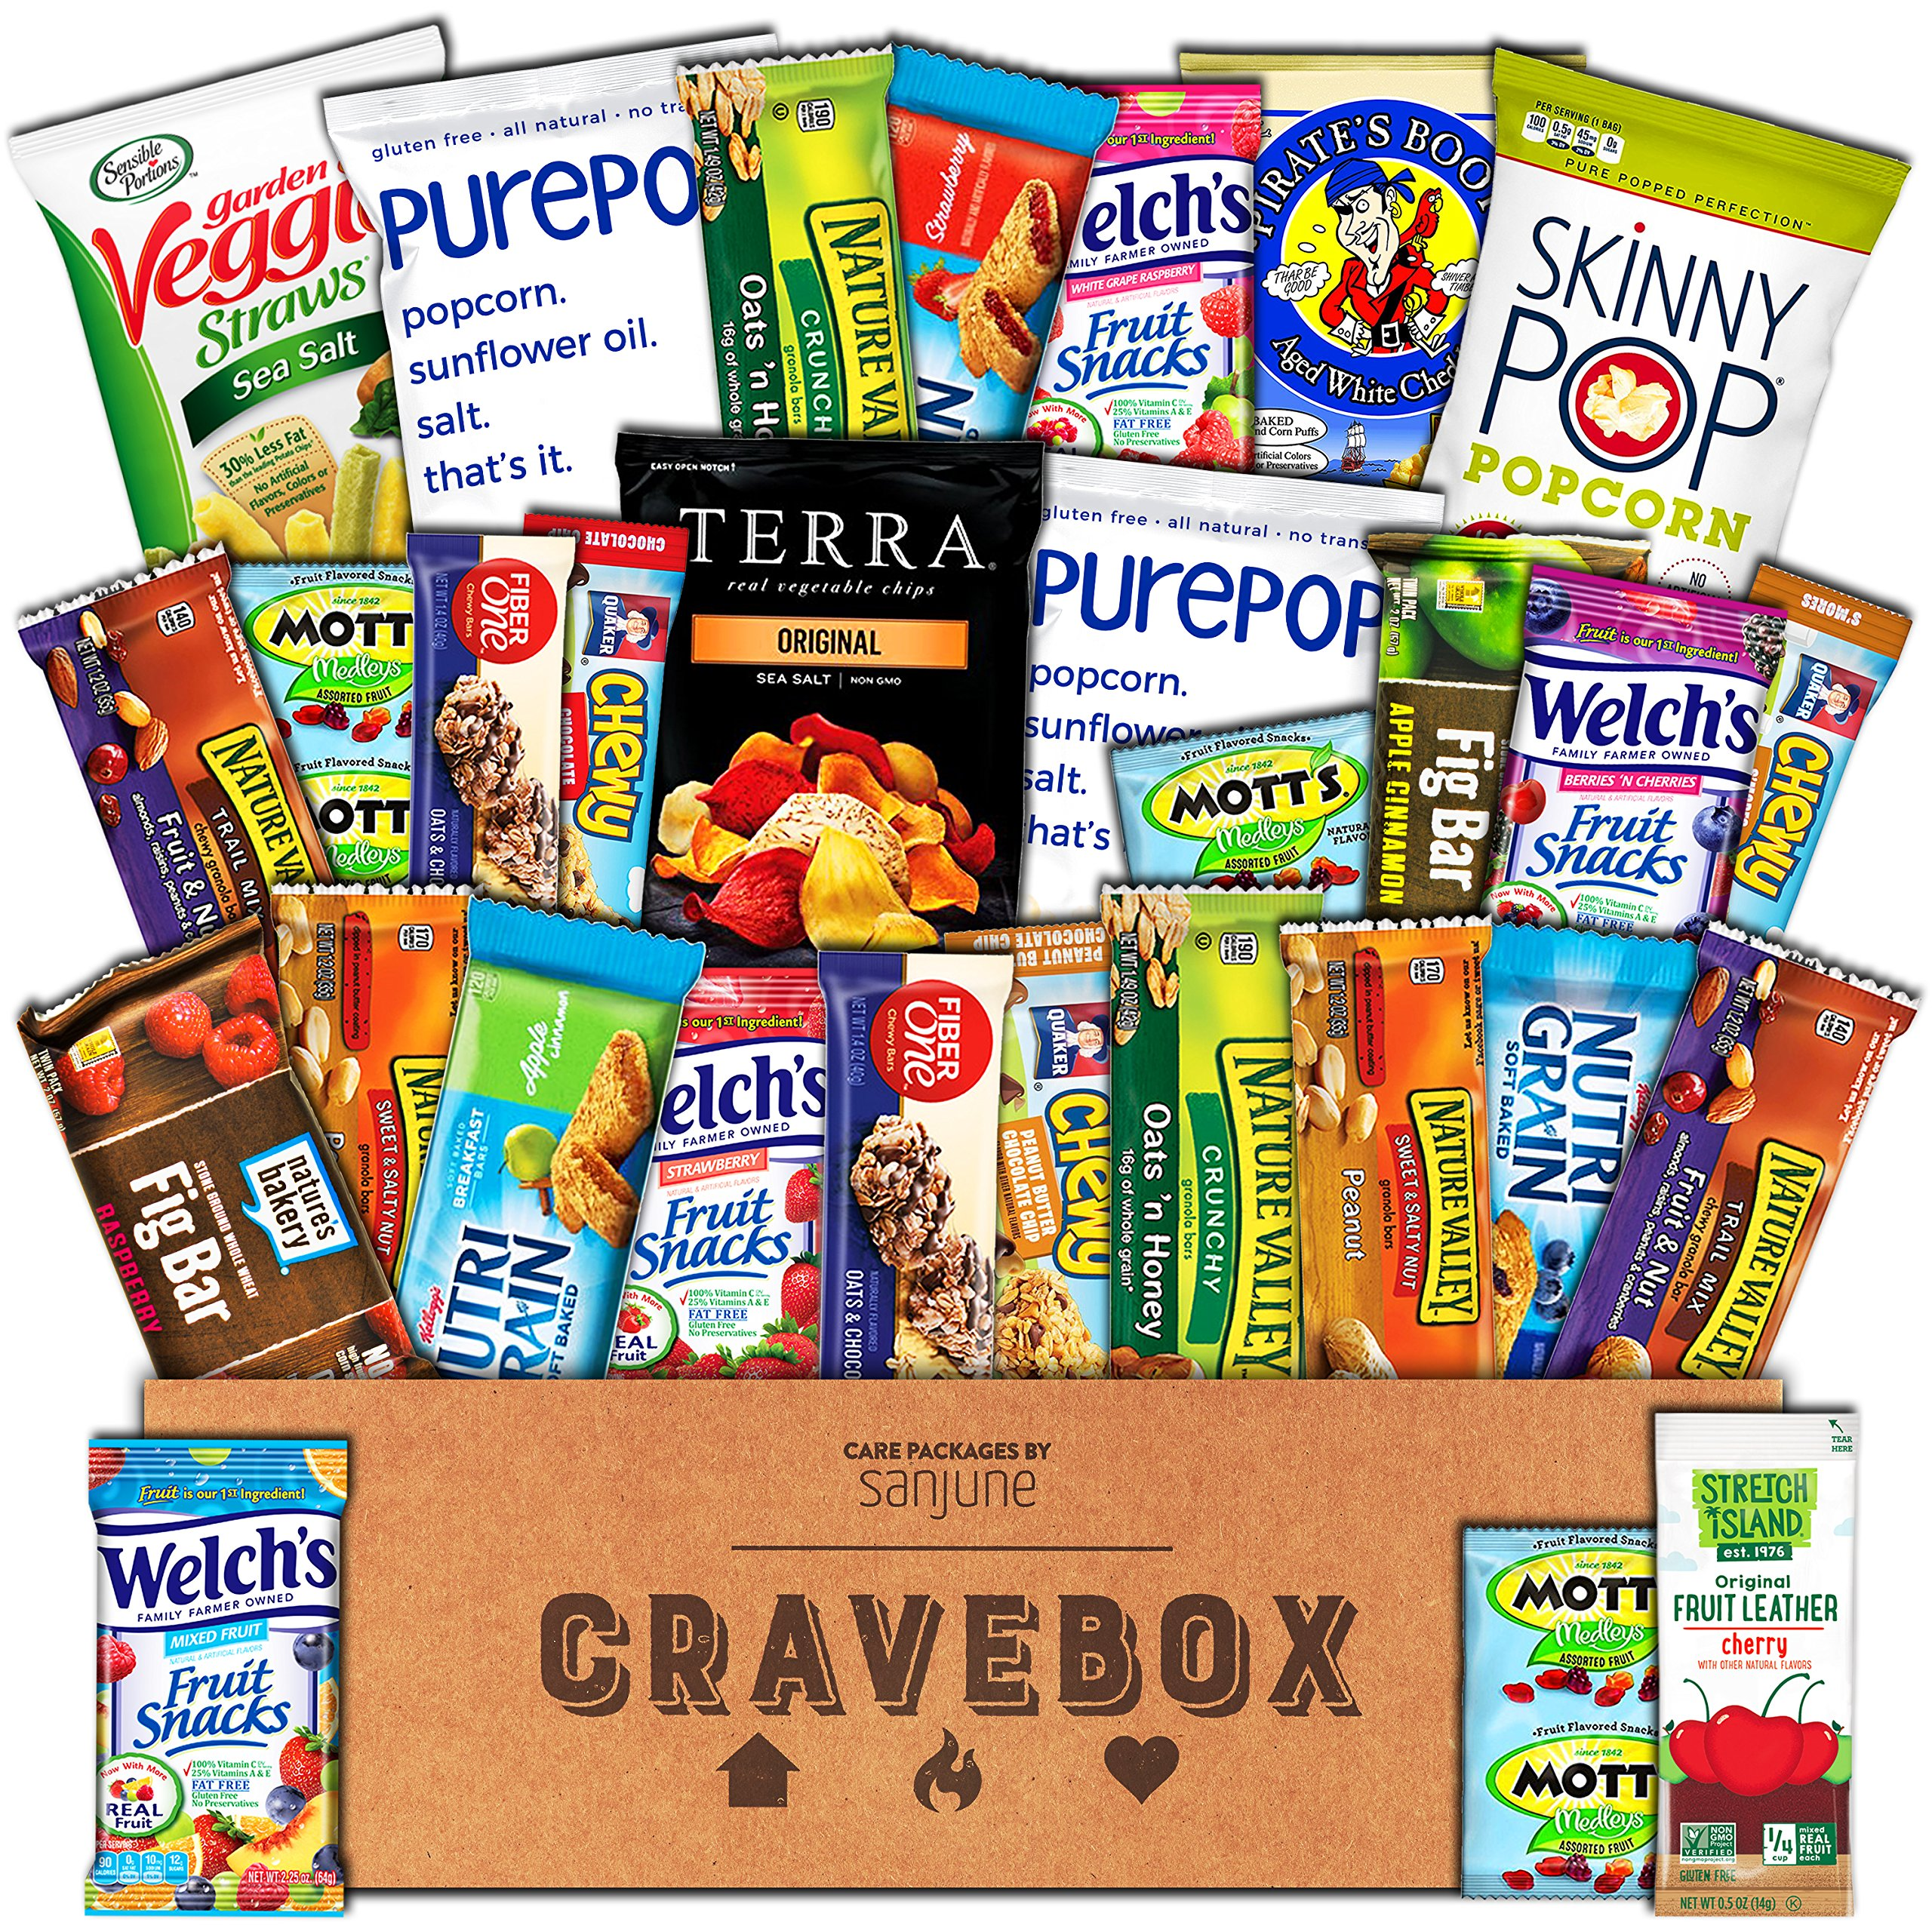 CraveBox - Healthy Snacks Care Package (30 Count) - Variety Assortment with Fruit Snacks, Granola Bars, Popcorn and More, Gift Snack Box for Lunches, Offices or College Students by CraveBox